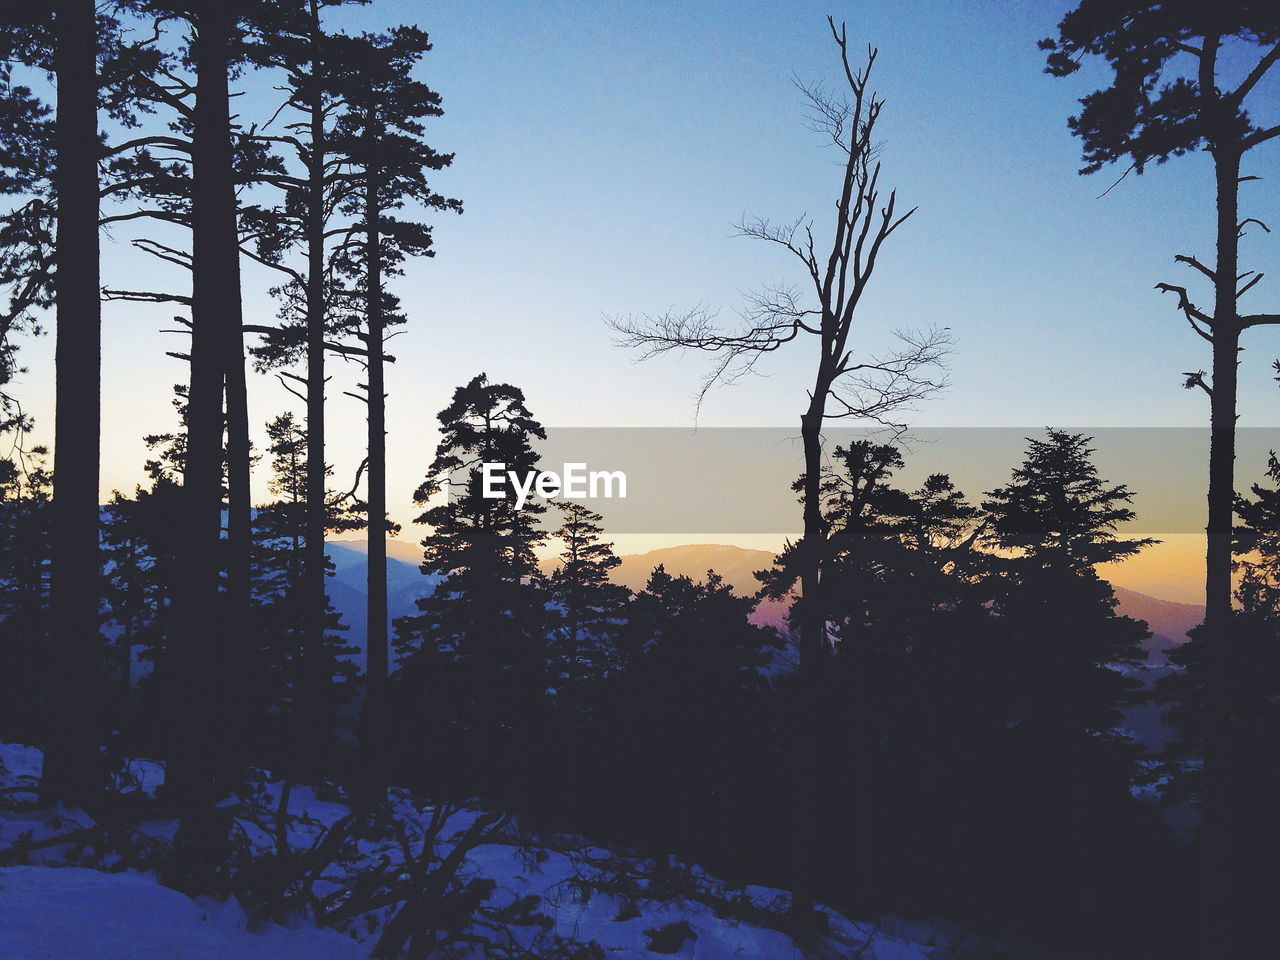 SILHOUETTE TREES IN FOREST AGAINST CLEAR SKY DURING WINTER